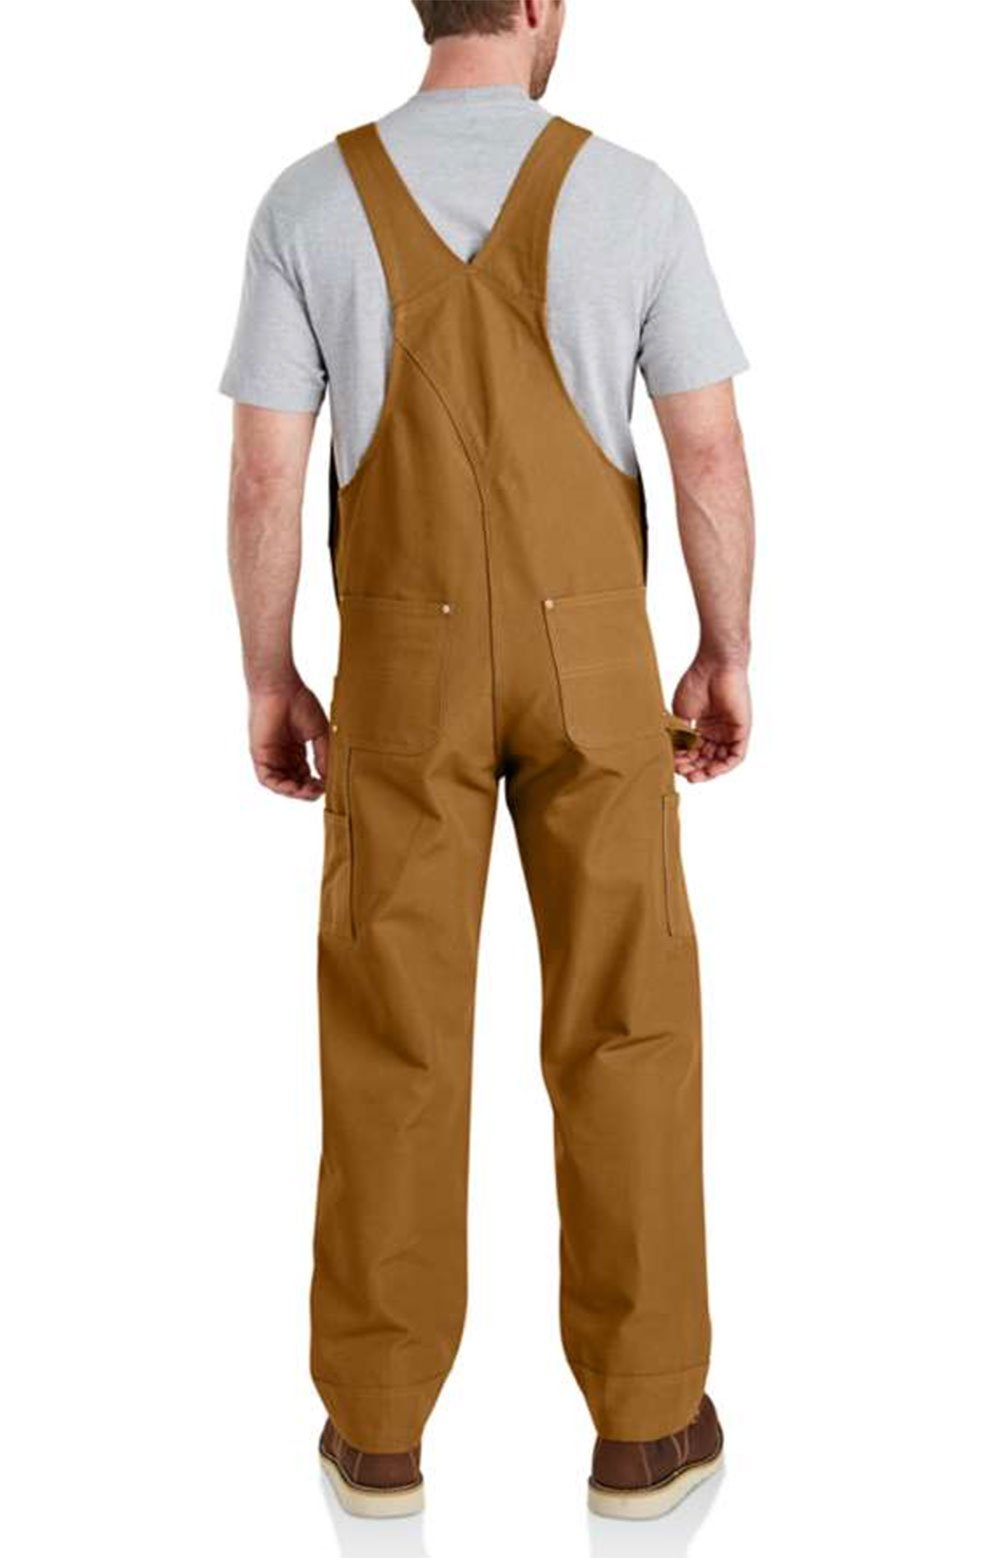 (102776) Relaxed Fit Duck Bib Overalls - Carhartt Brown 2